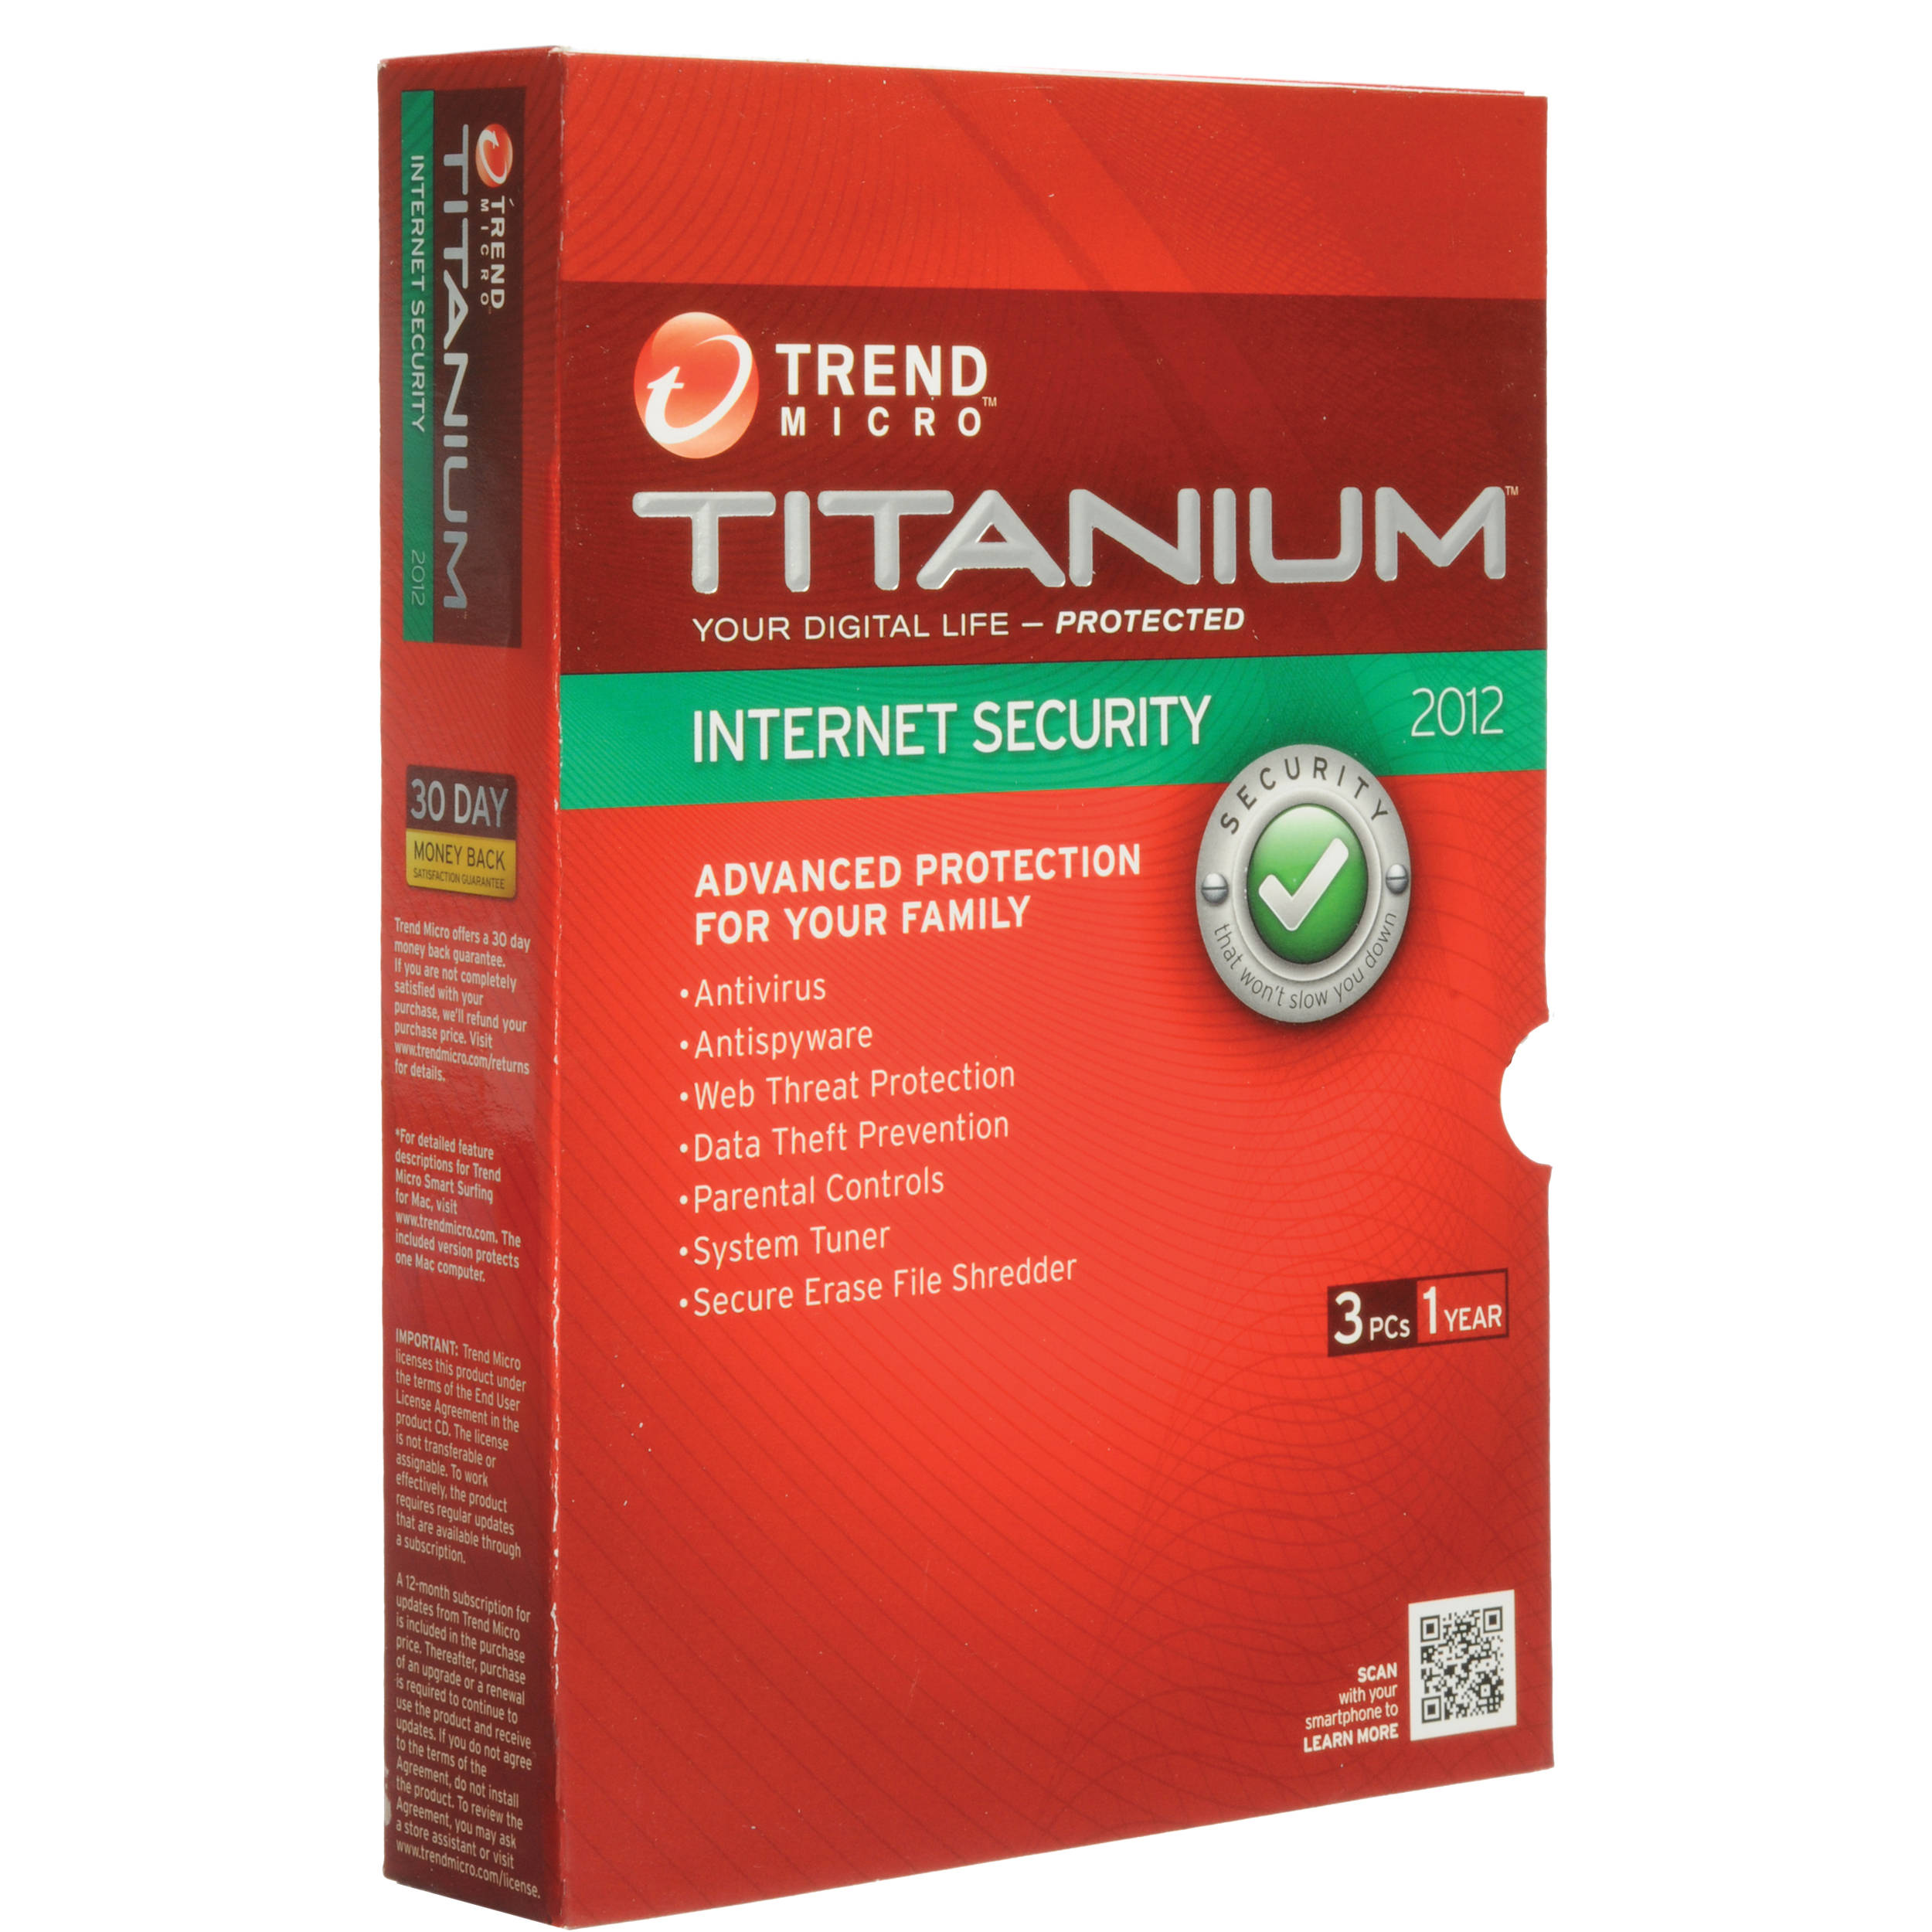 Trend micro titanium internet security 2017 1 user review